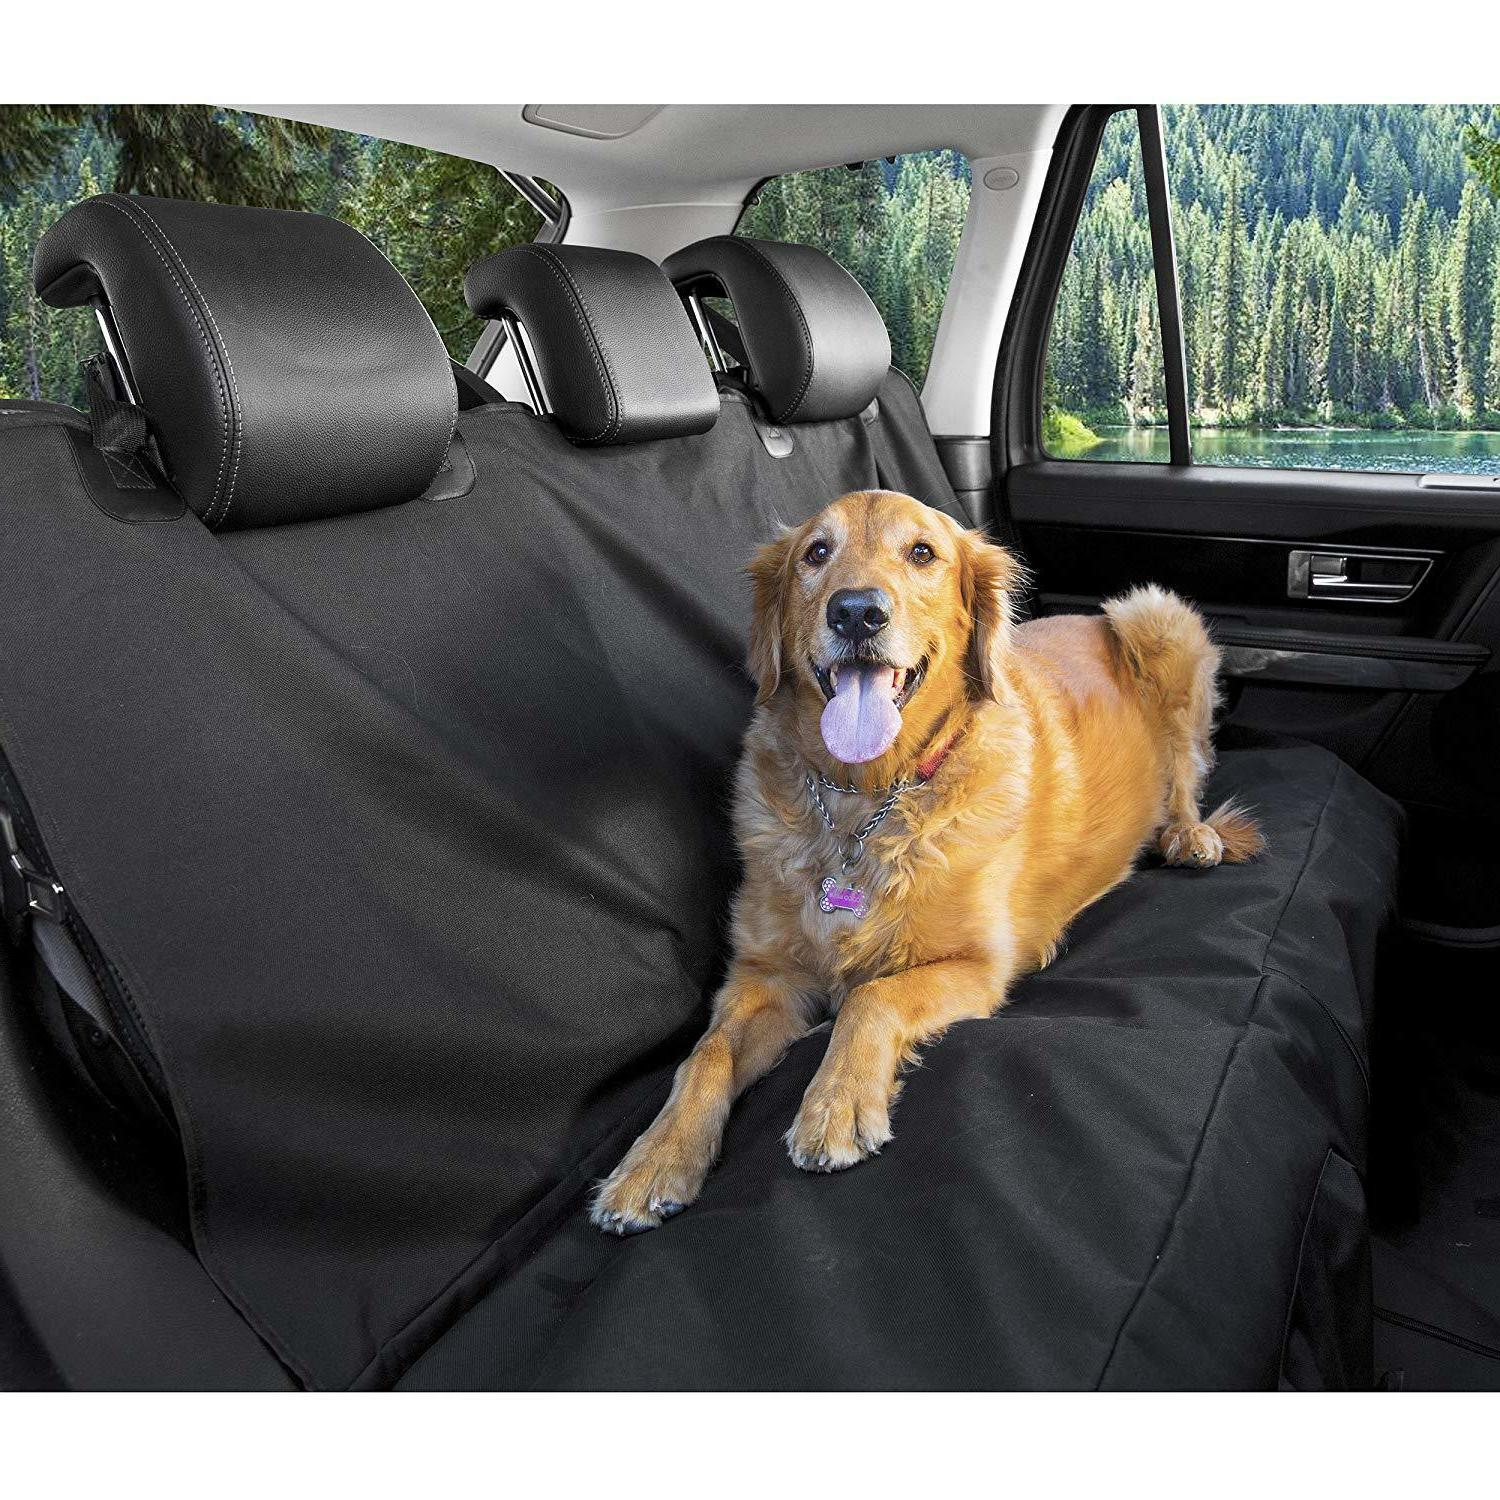 BarksBar Cover for Pet Seat Cover Cars